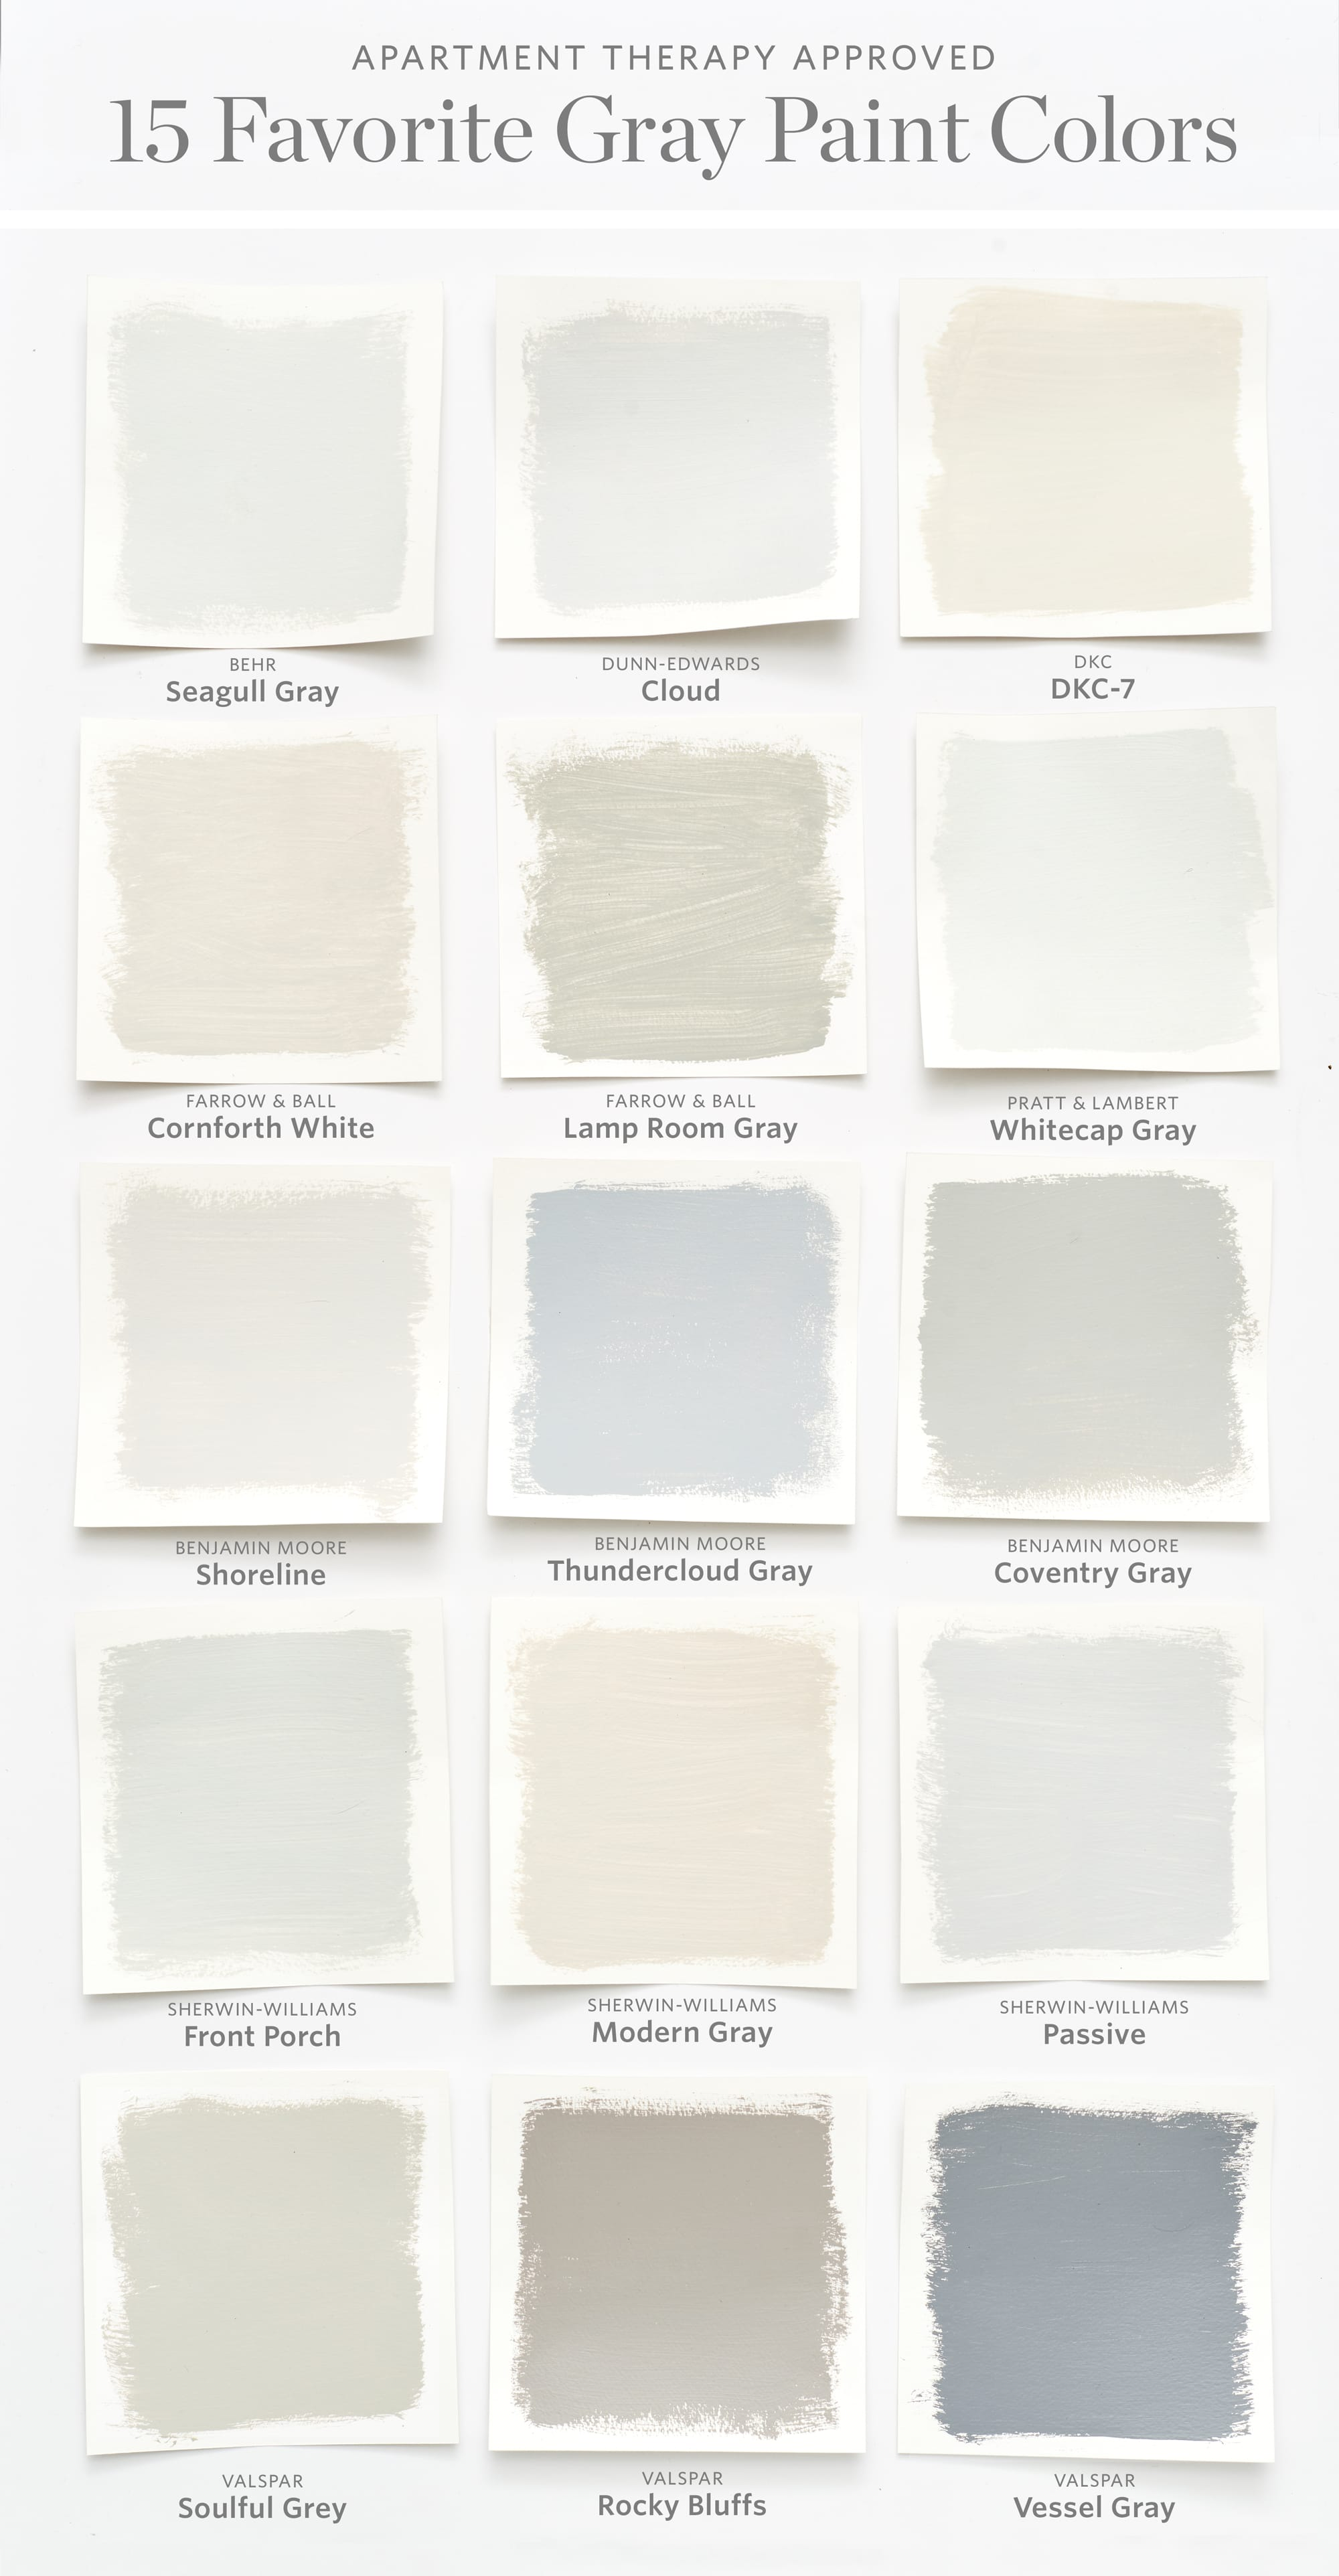 Color Cheat Sheet The Best Gray Paint Colors Apartment Therapy